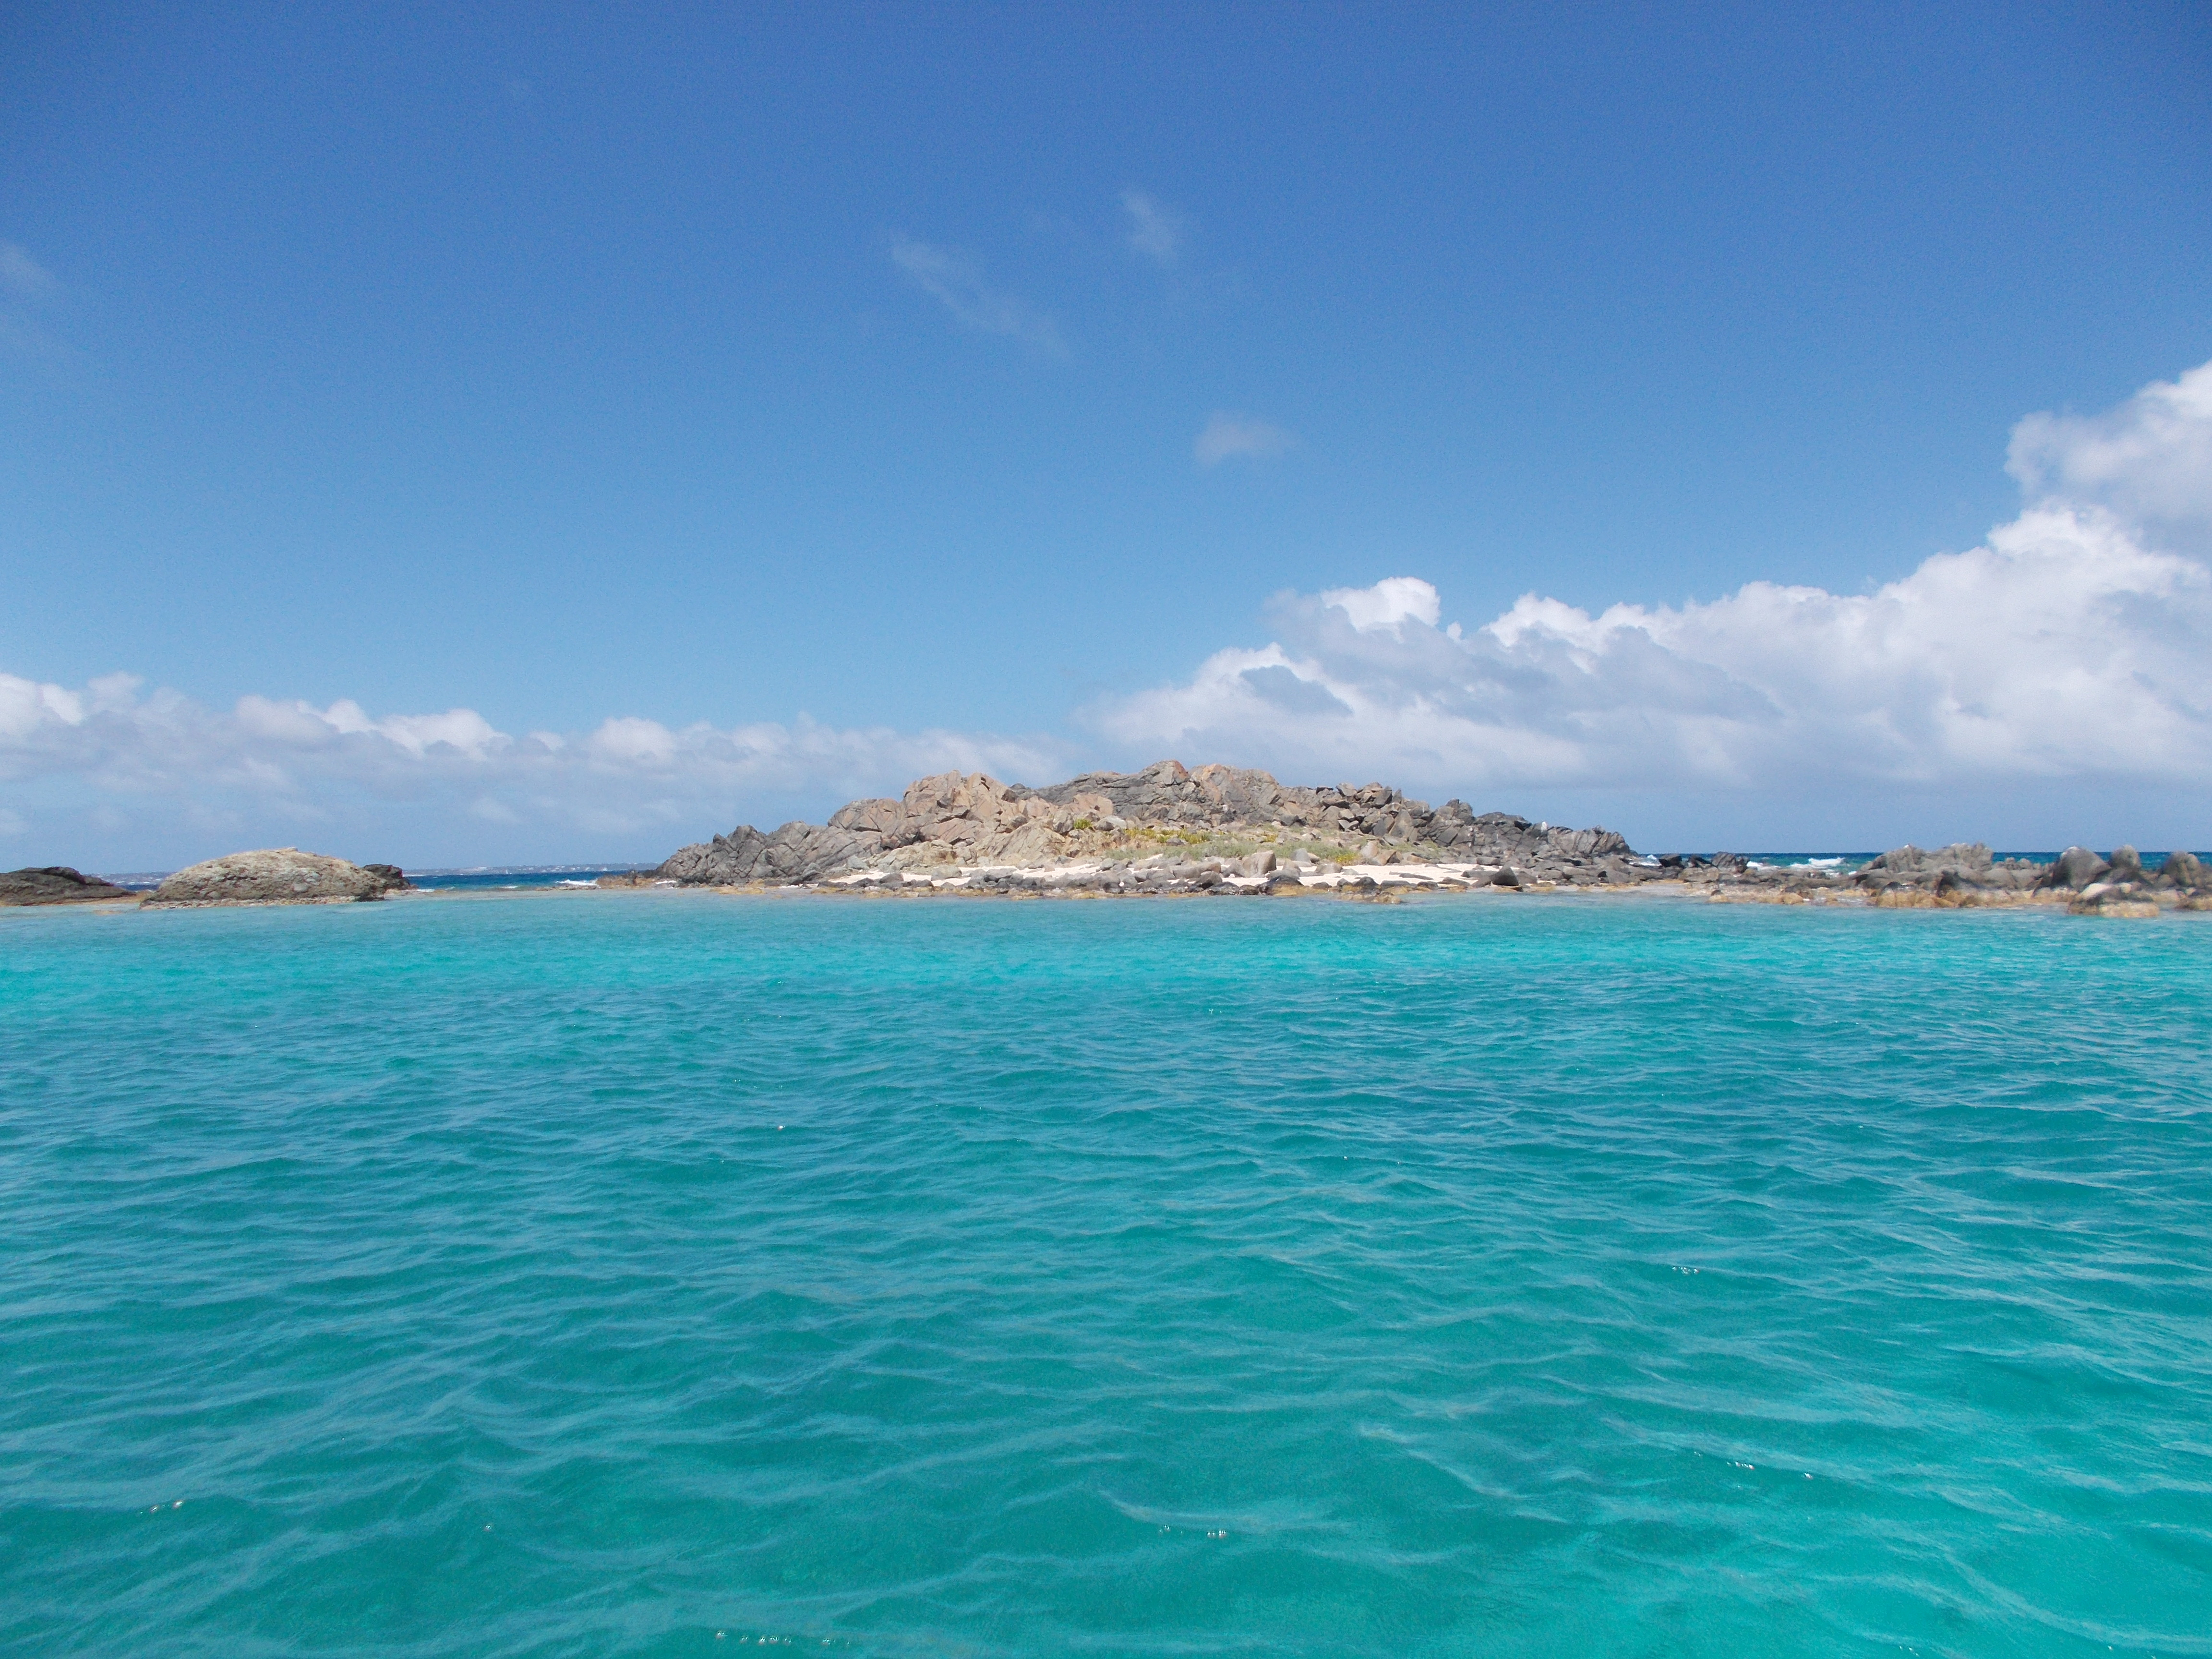 St Barts VIP jet ski tours from St Maarten with Jet Paradise St Maarten (1)